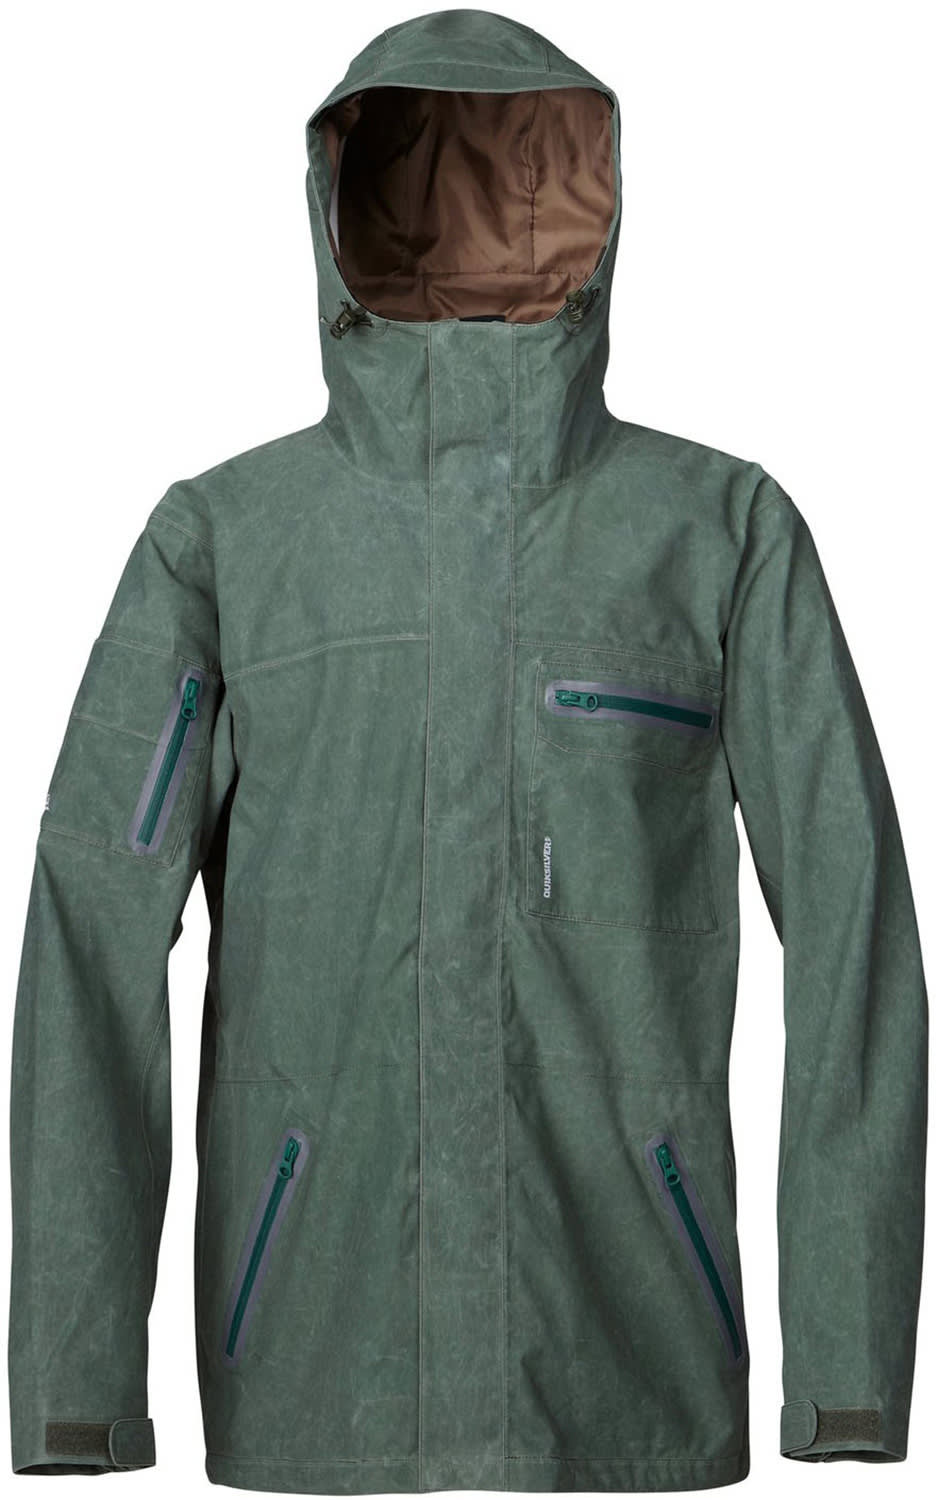 Quiksilver mens jacket - Quiksilver Dreaming Snowboard Jacket Rollover To Change Click To Enlarge